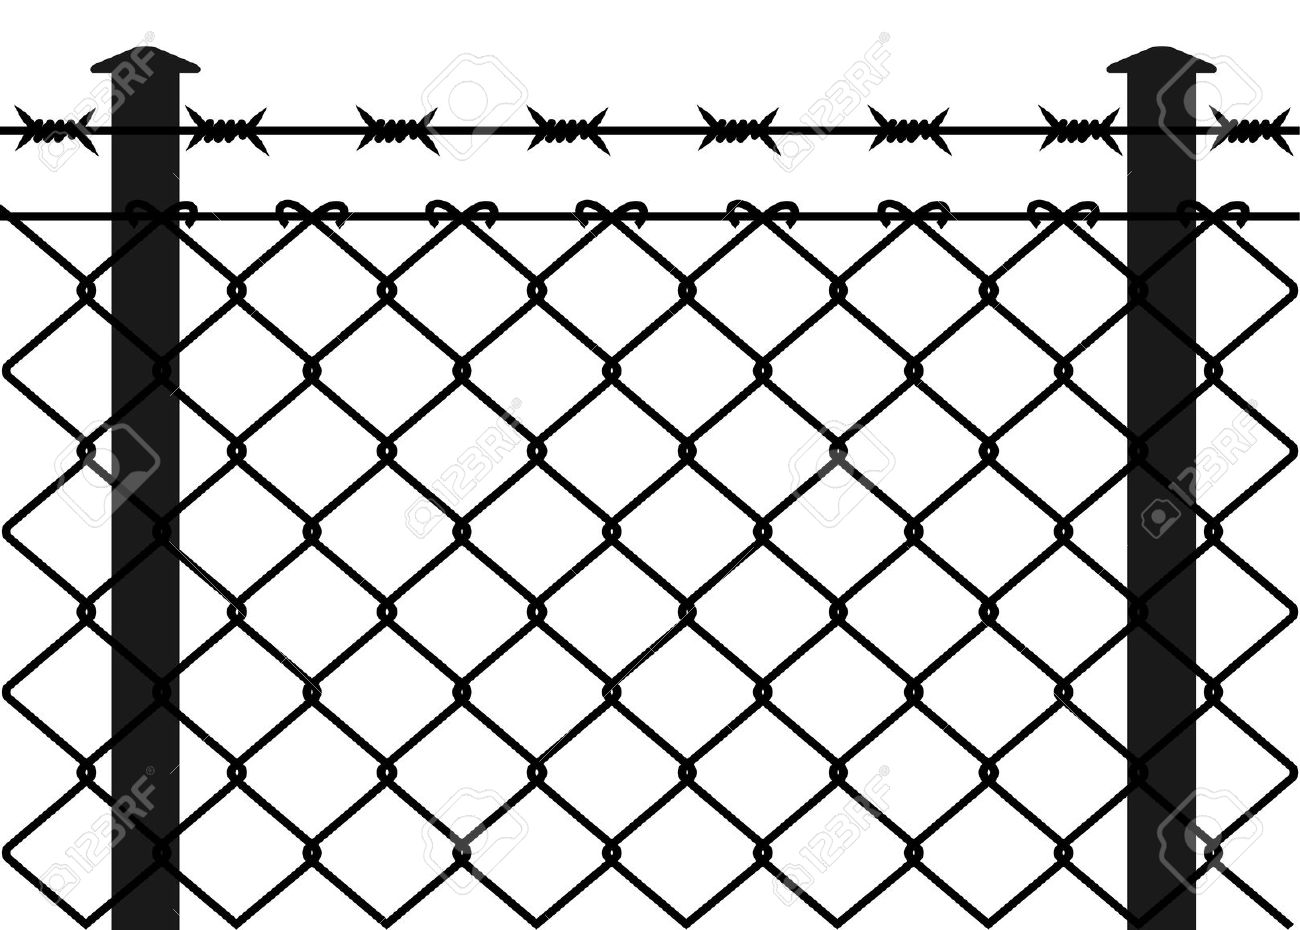 Mesh wire fence clipart #3